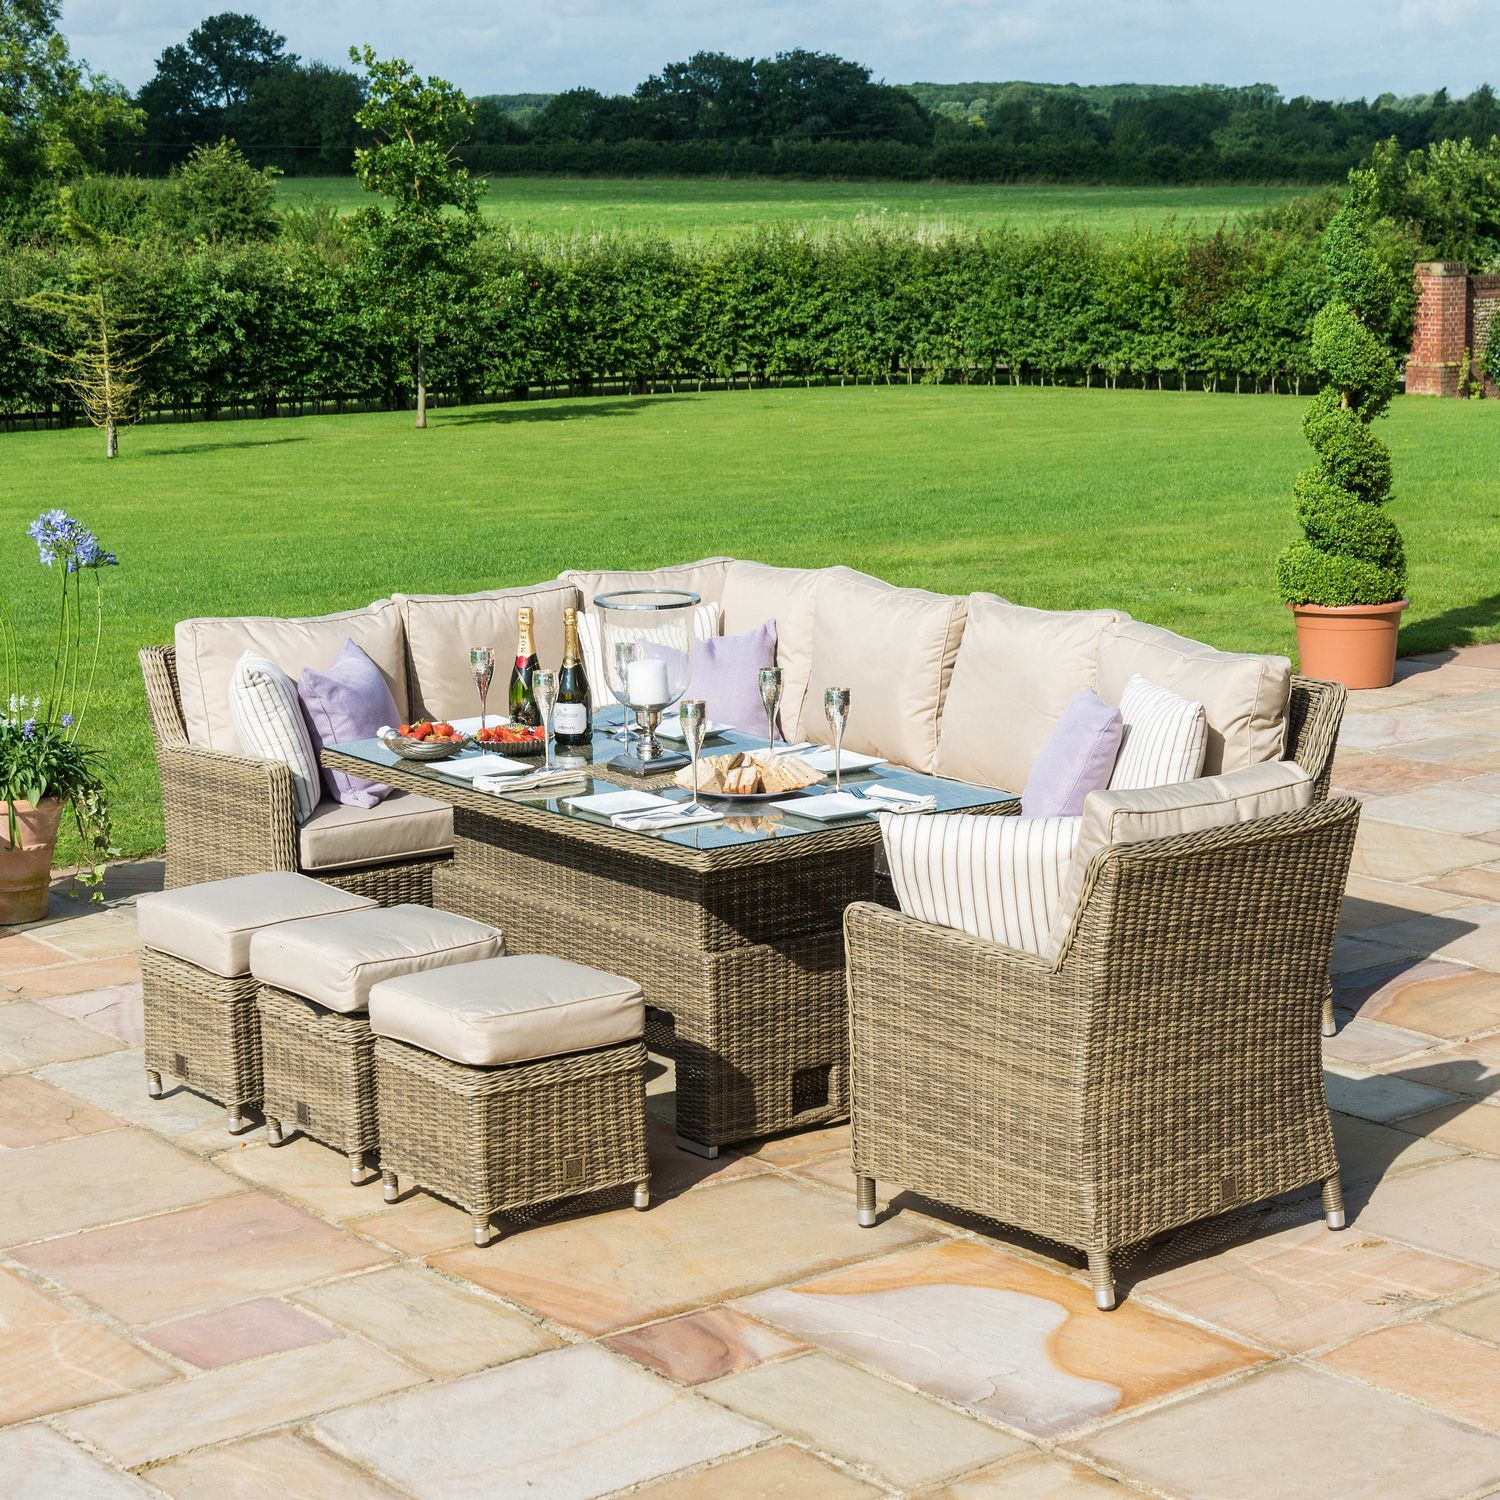 Rattan Garden Furniture Winchester Ice Bucket Corner Chair Oak Furniture House